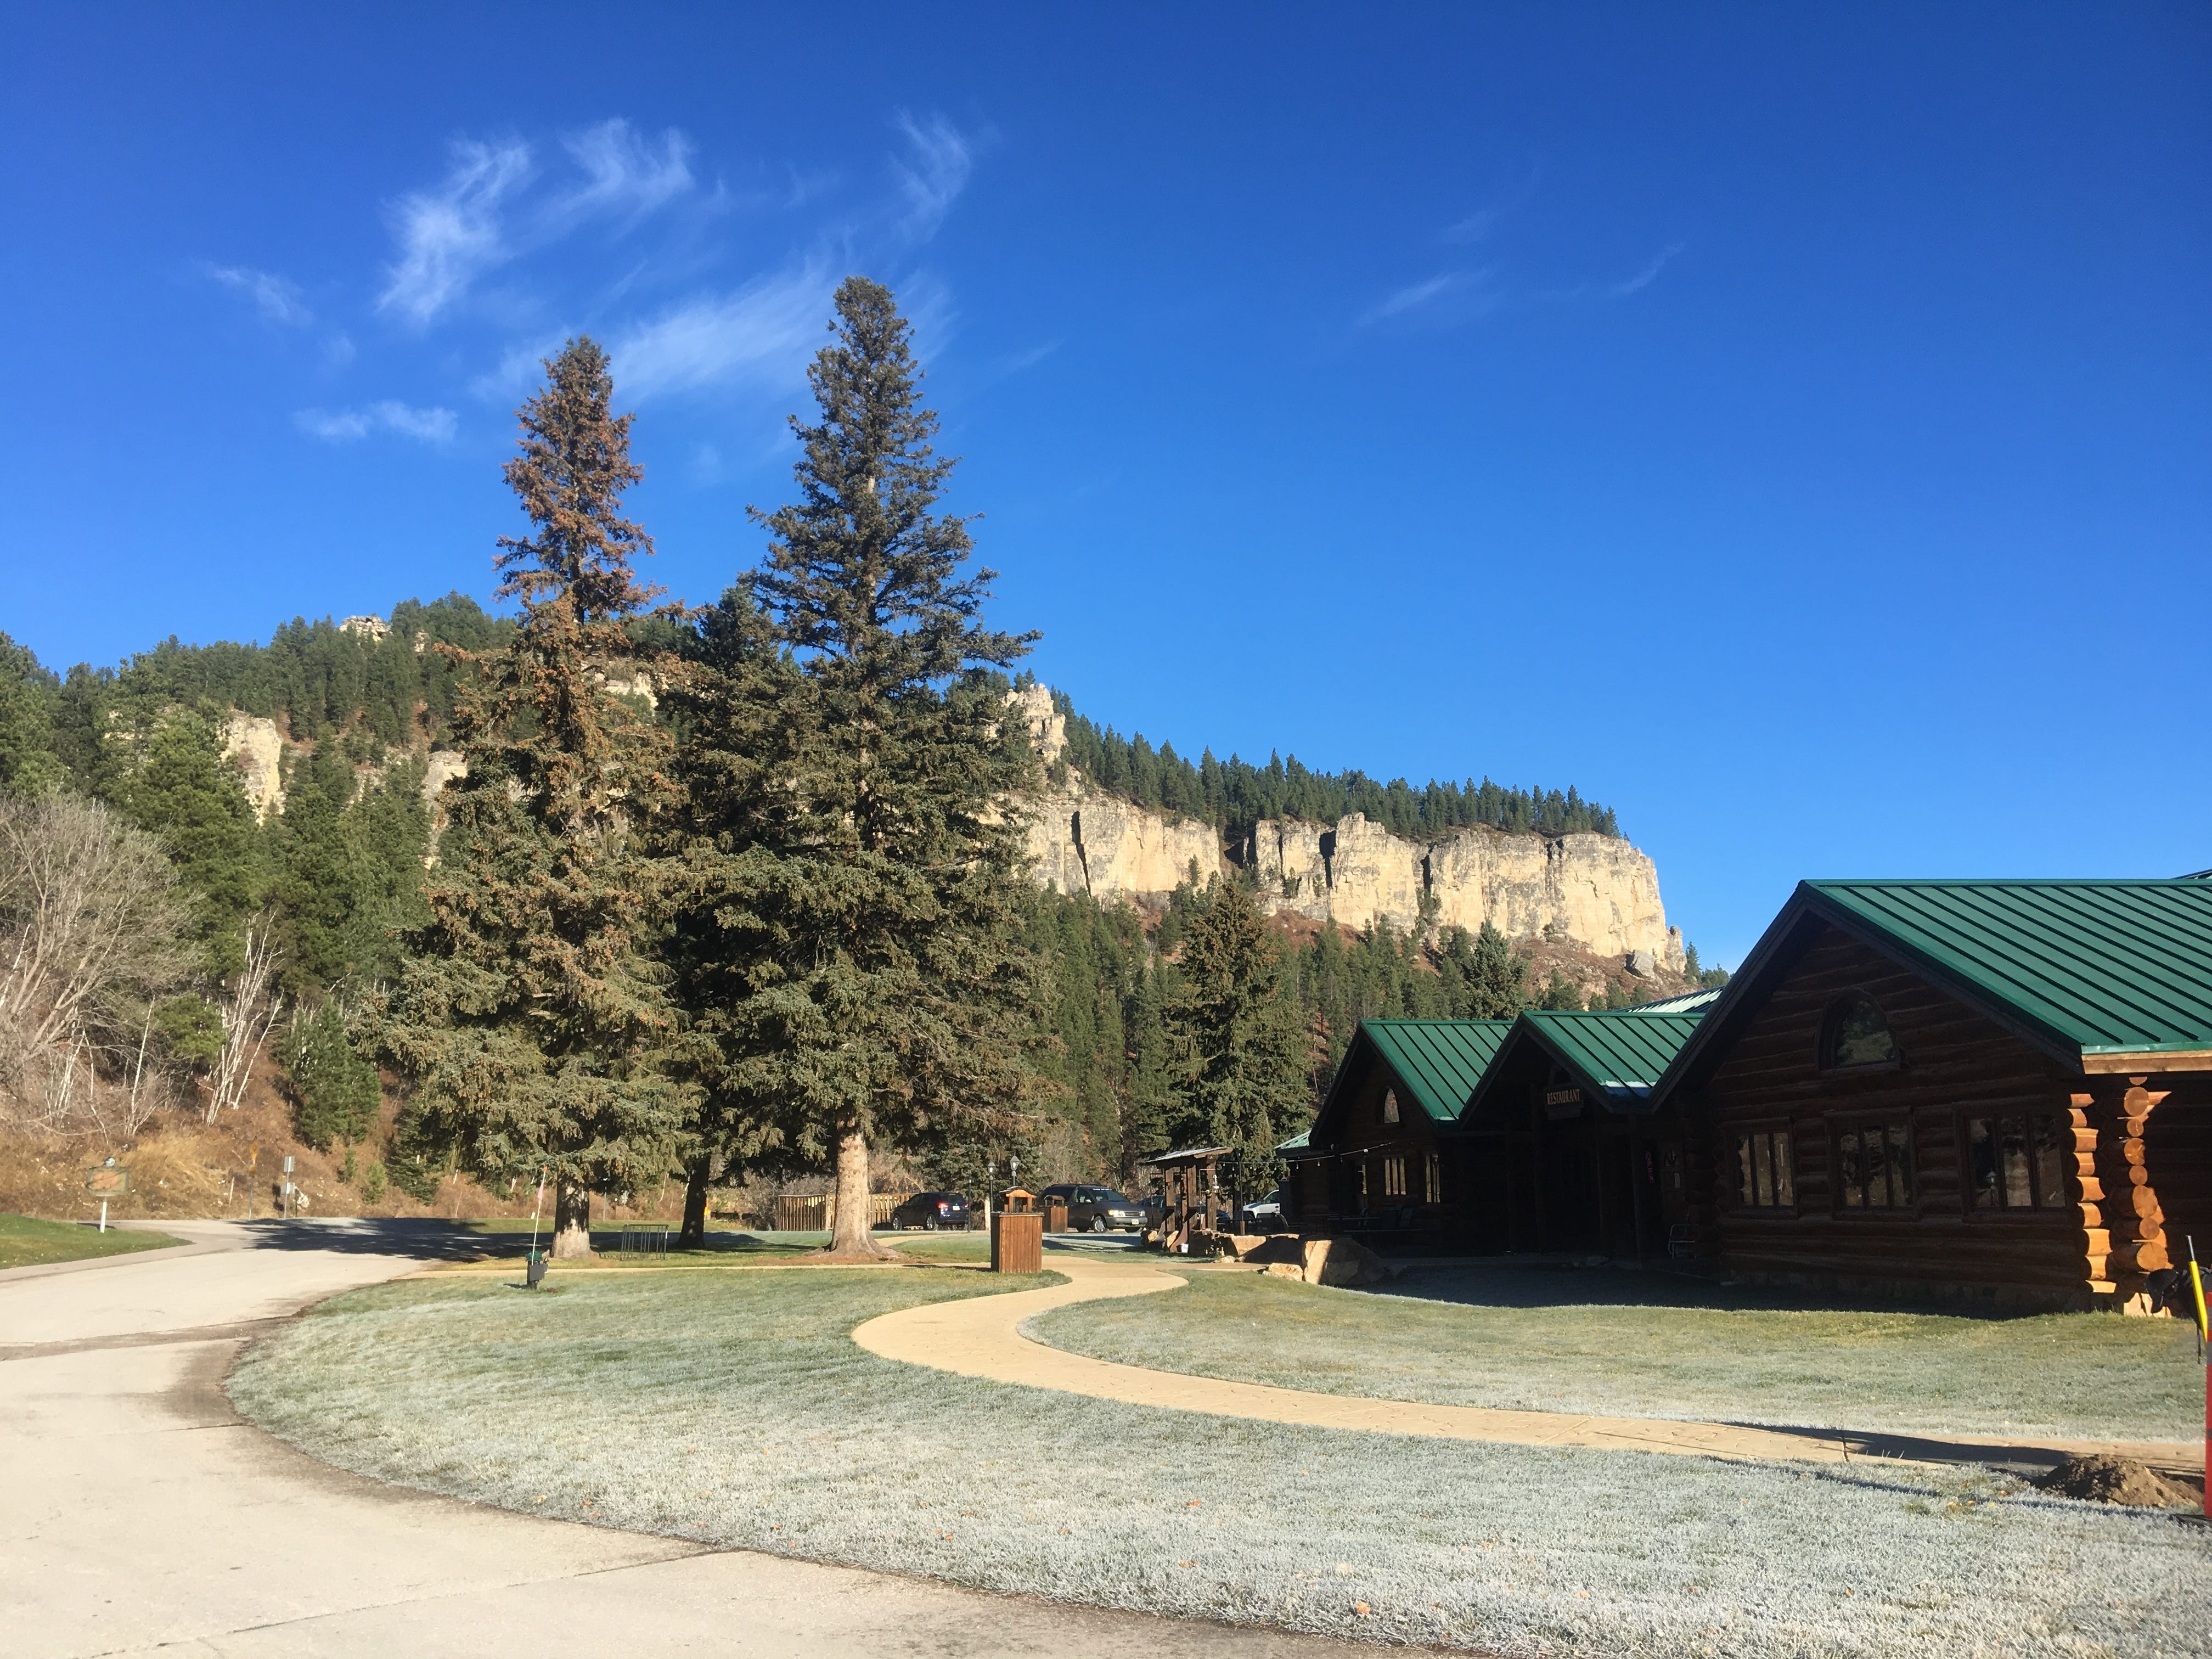 Log cabin-themed lodges within Black Hills National Forest.